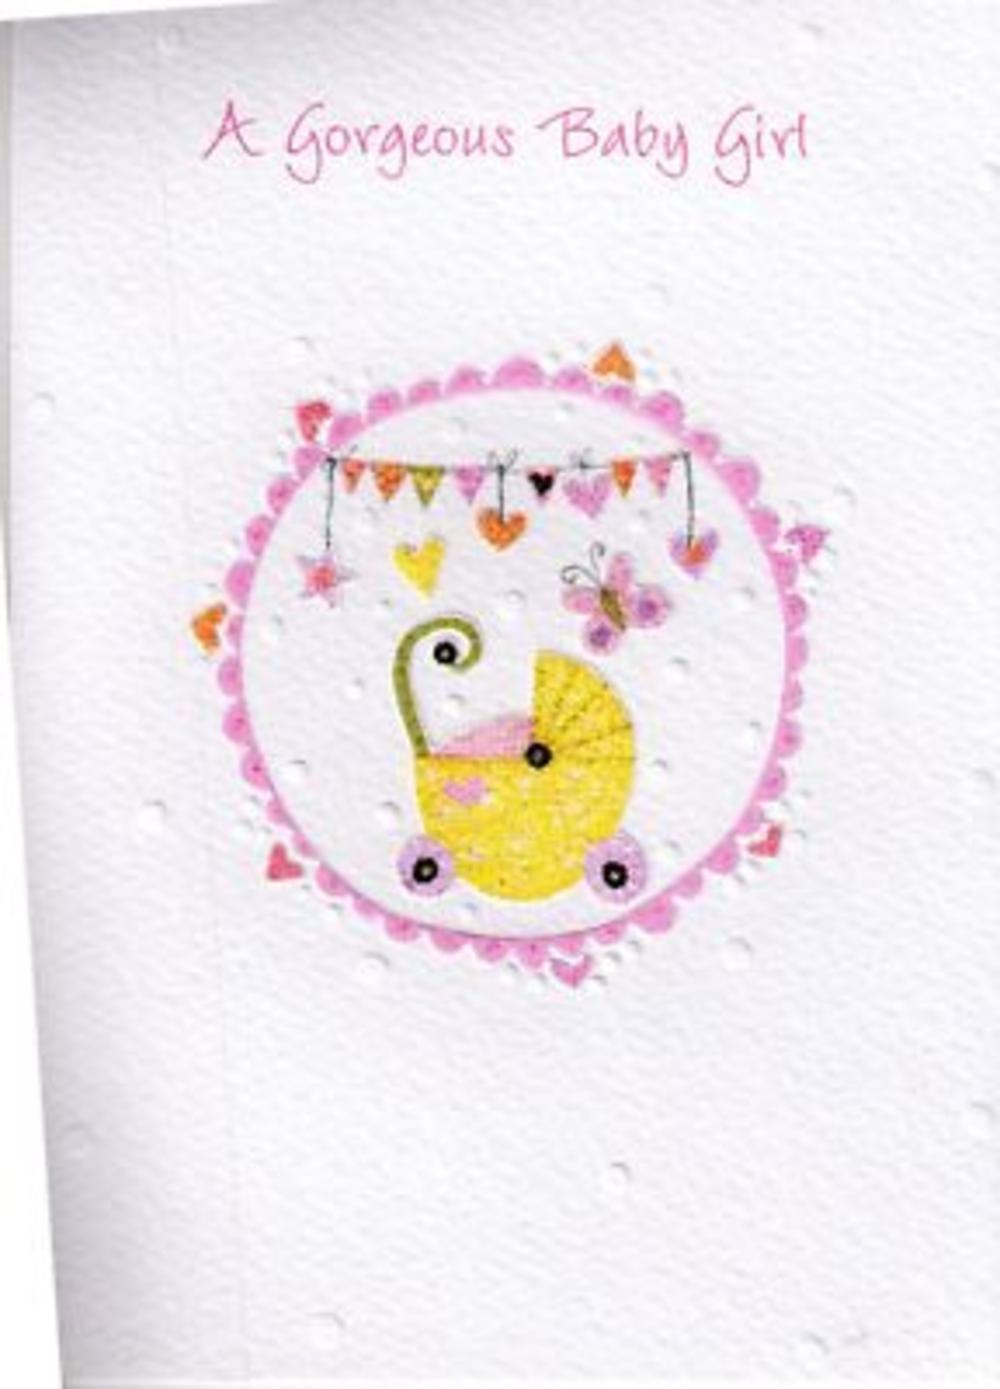 Glittered New Baby Girl Greeting Card